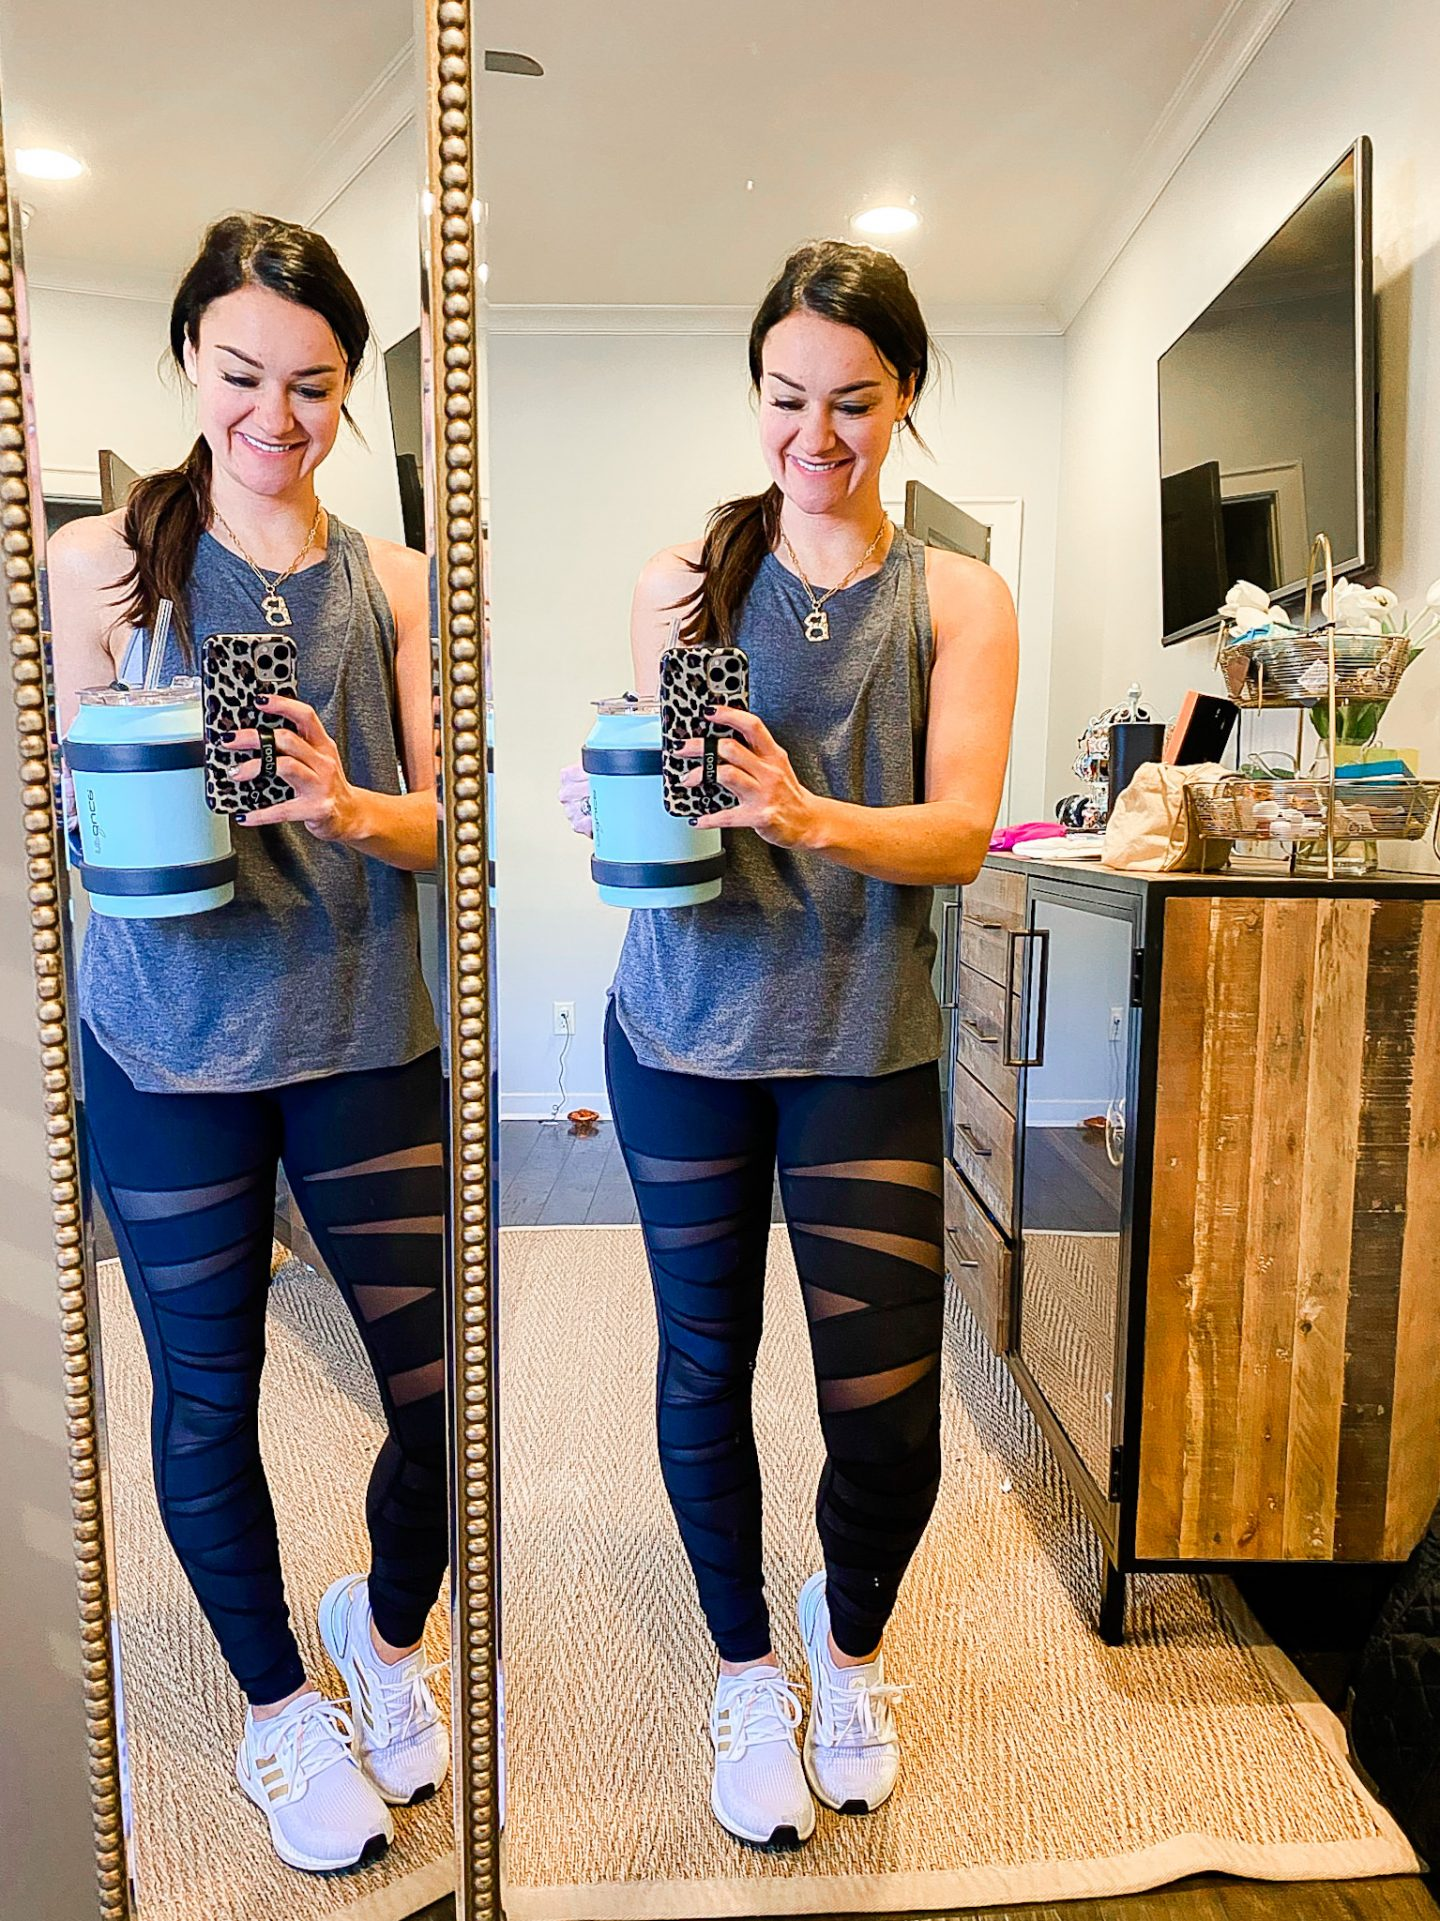 Top 3 Healthy Choices For The Busy Mom In 2021 by Alabama Health + Wellness blogger, Heather Brown // My Life Well Loved